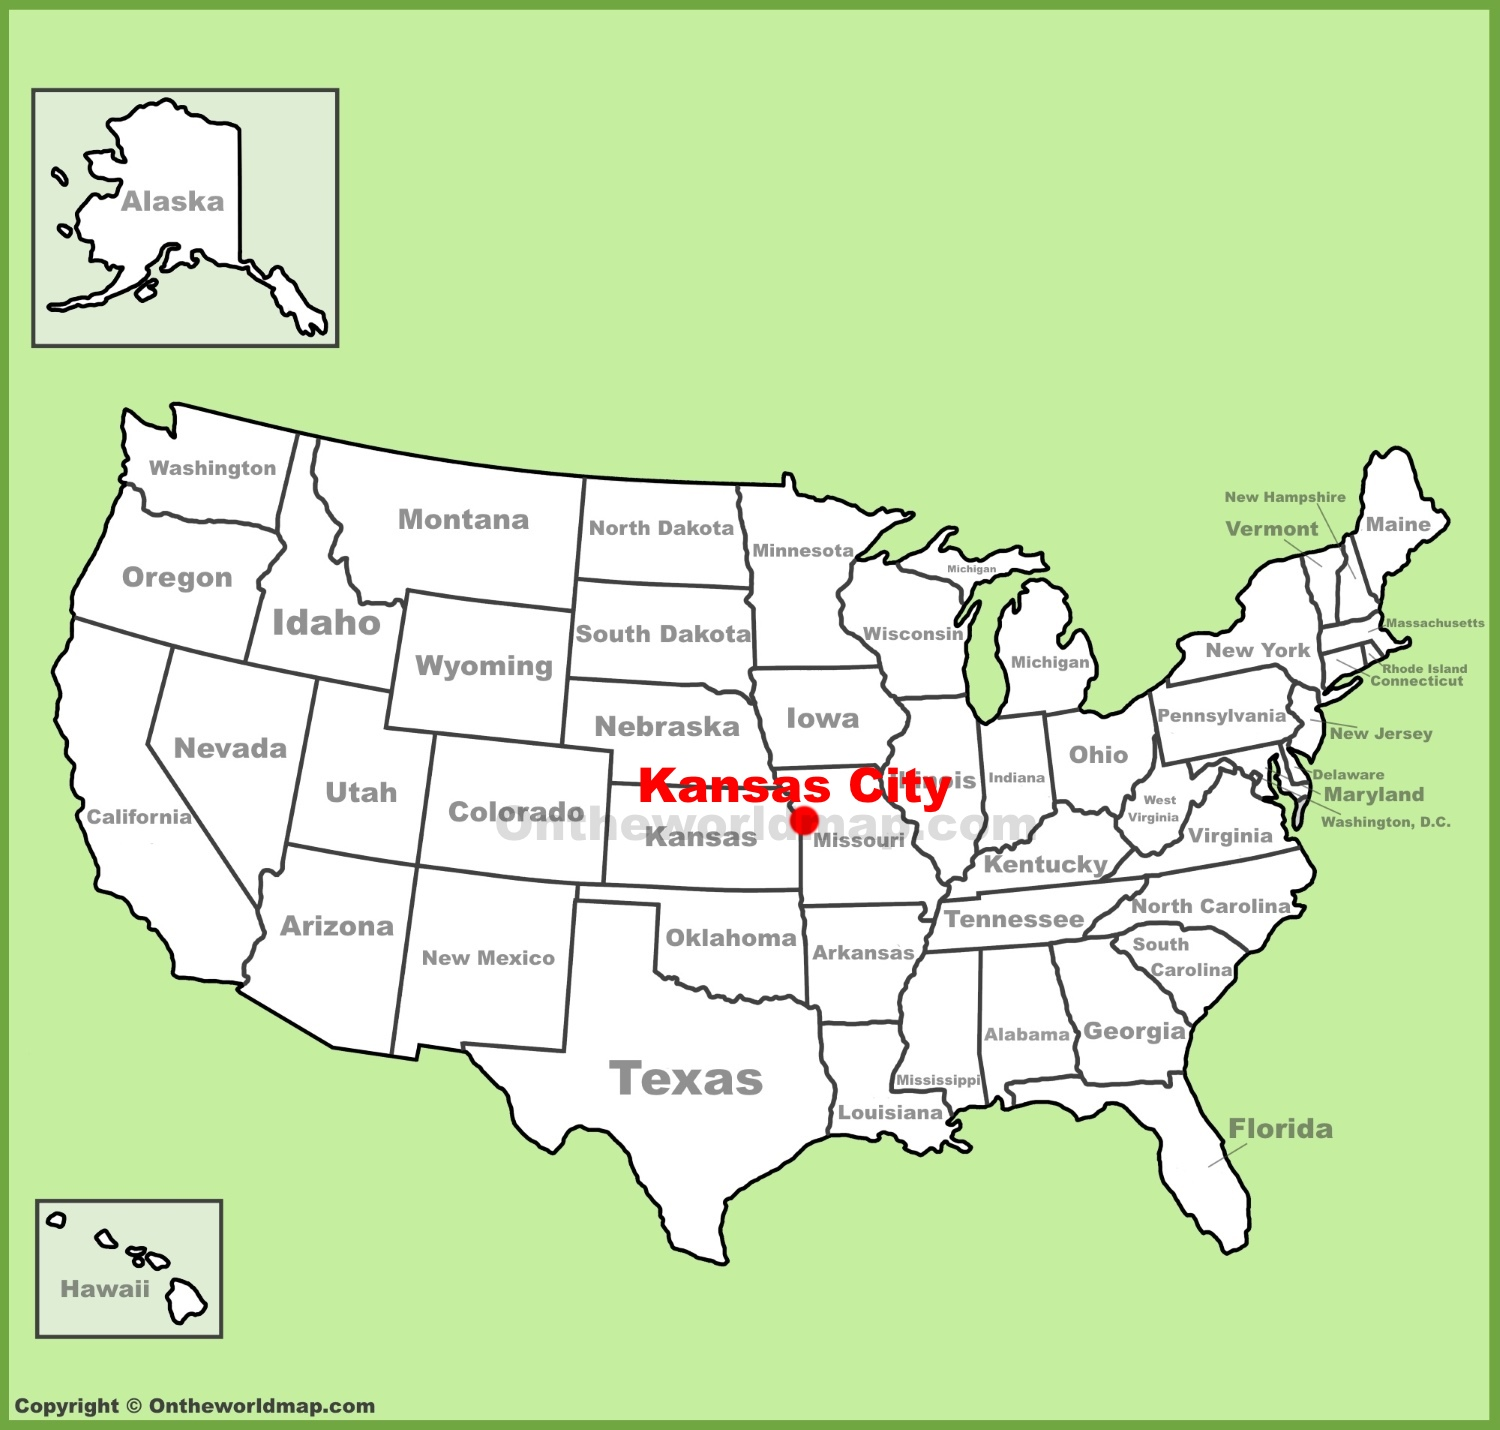 Kansas City location on the U.S. Map